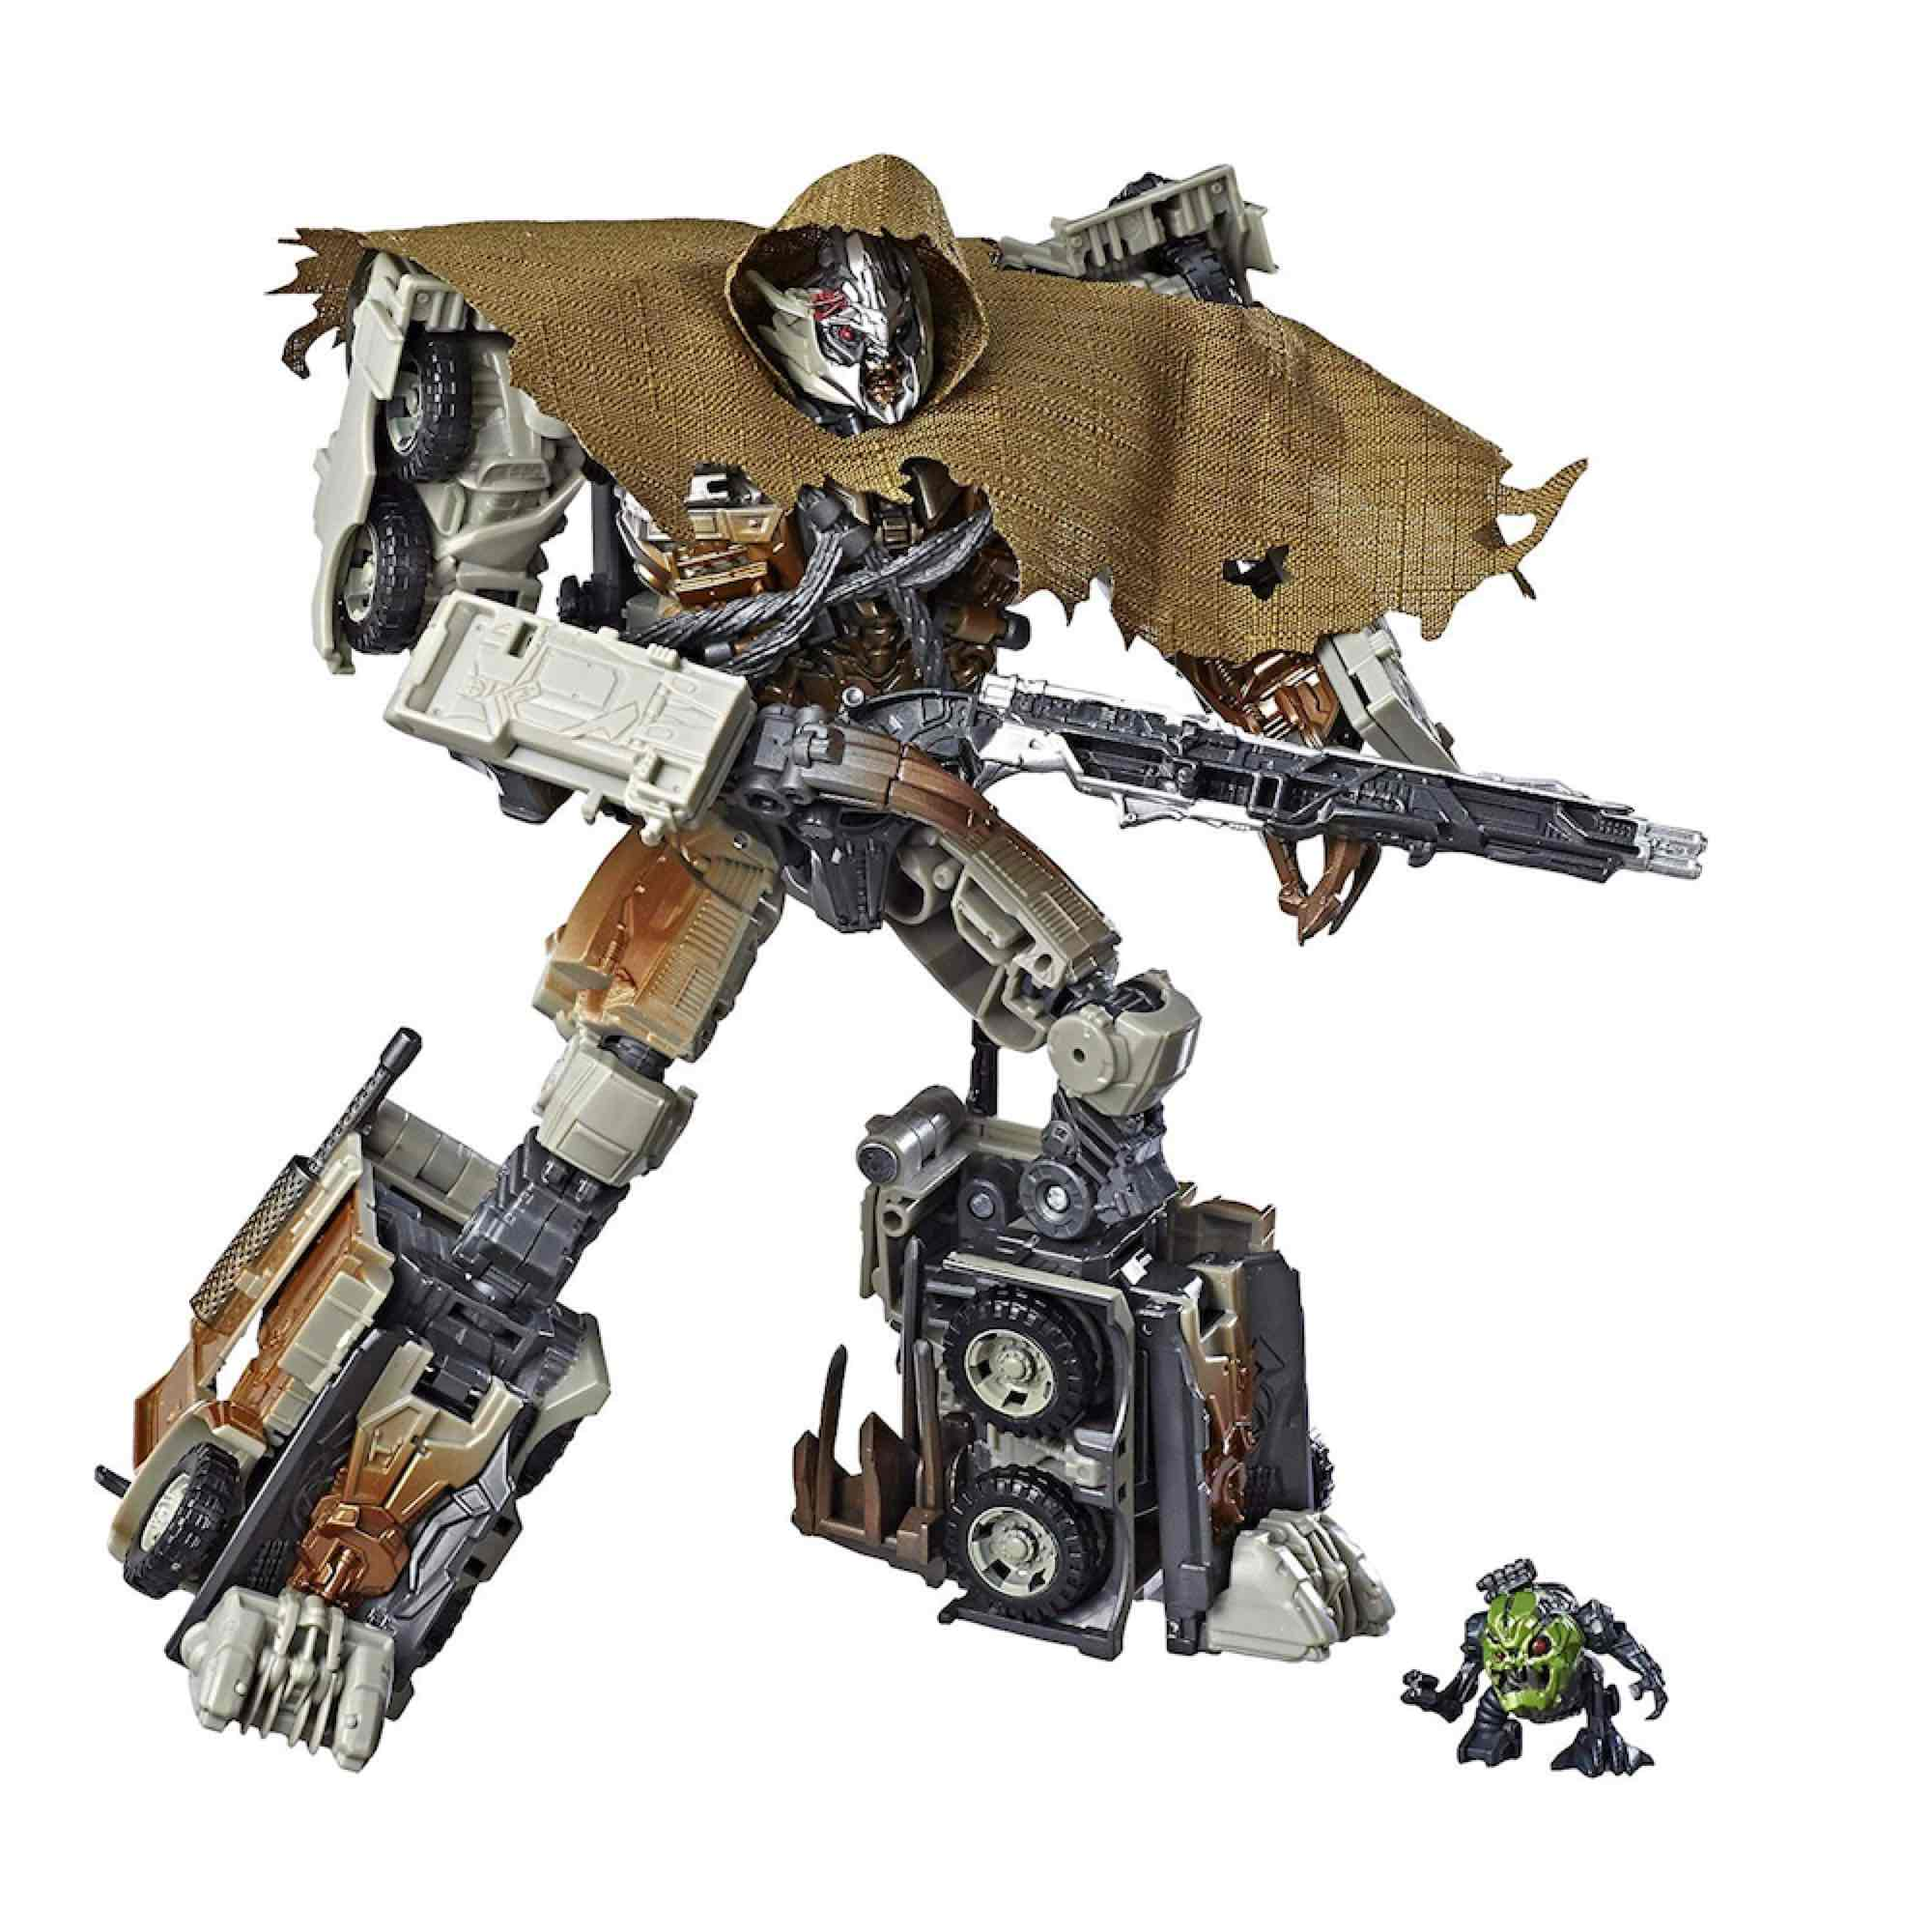 MEGATRON FIGURA 18 CM TRANSFORMERS DARK SIDE OF THE MOON STUDIO SERIES LEADER